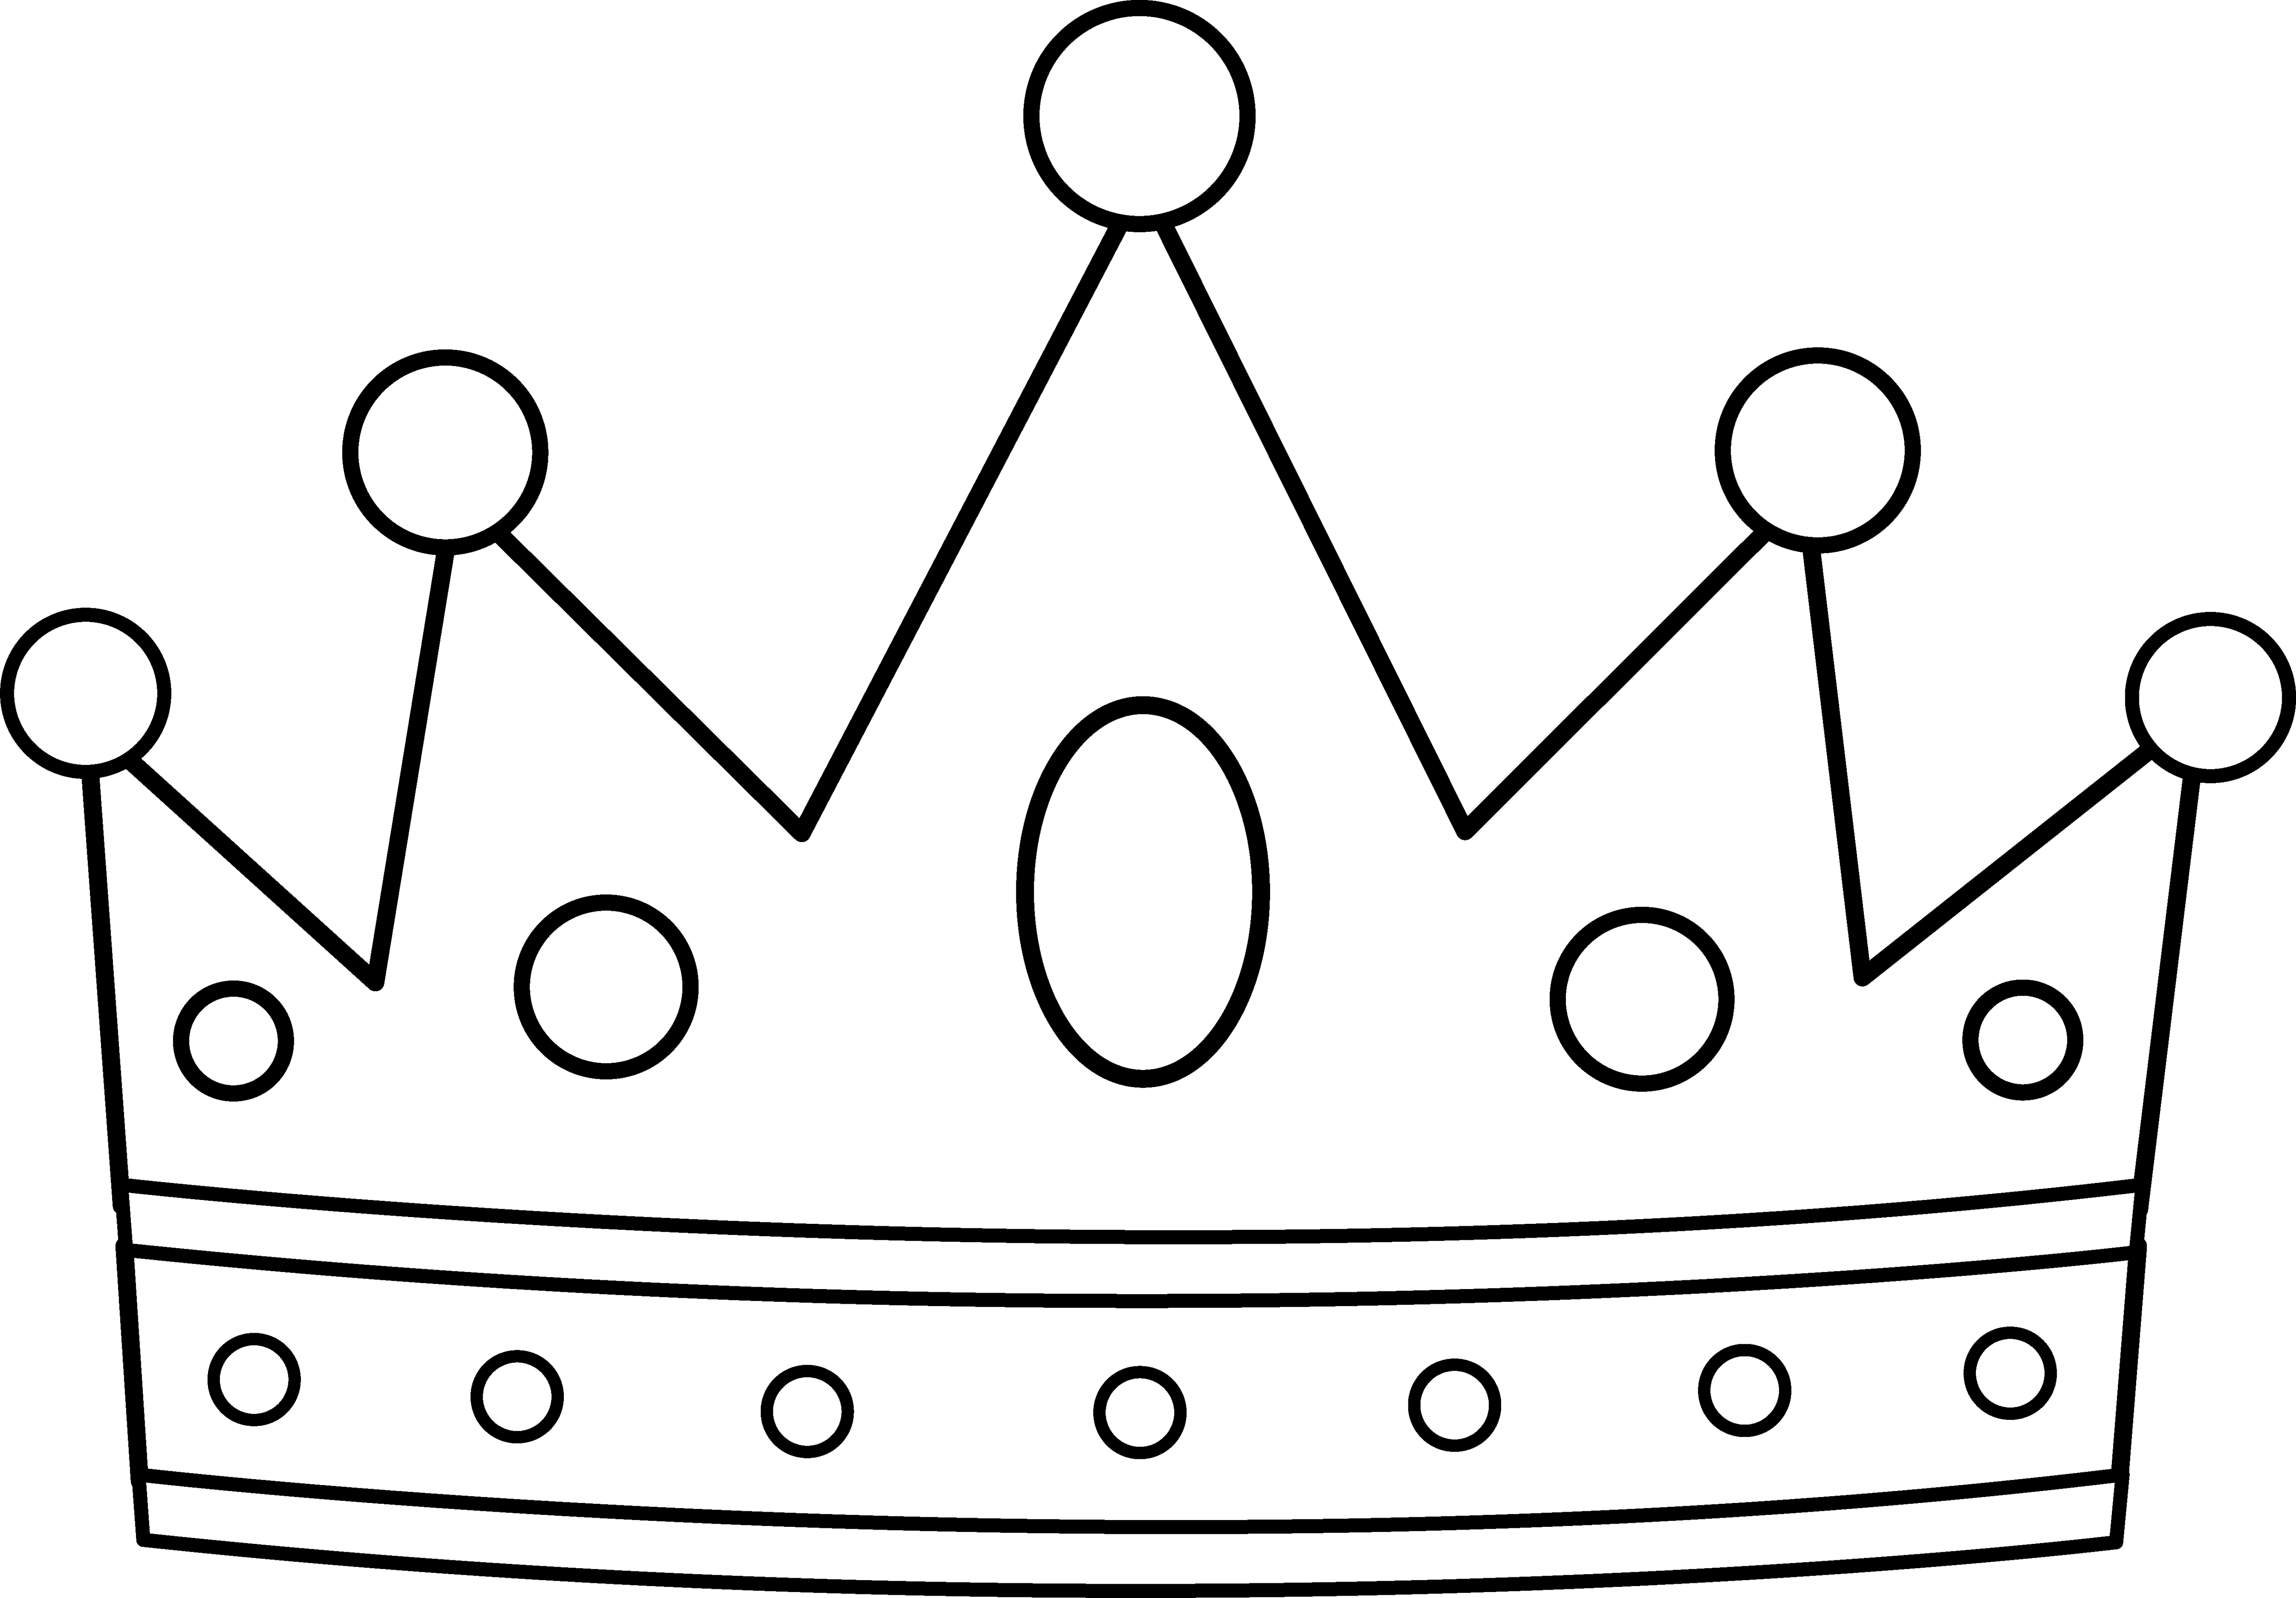 Crown coloring #7, Download drawings